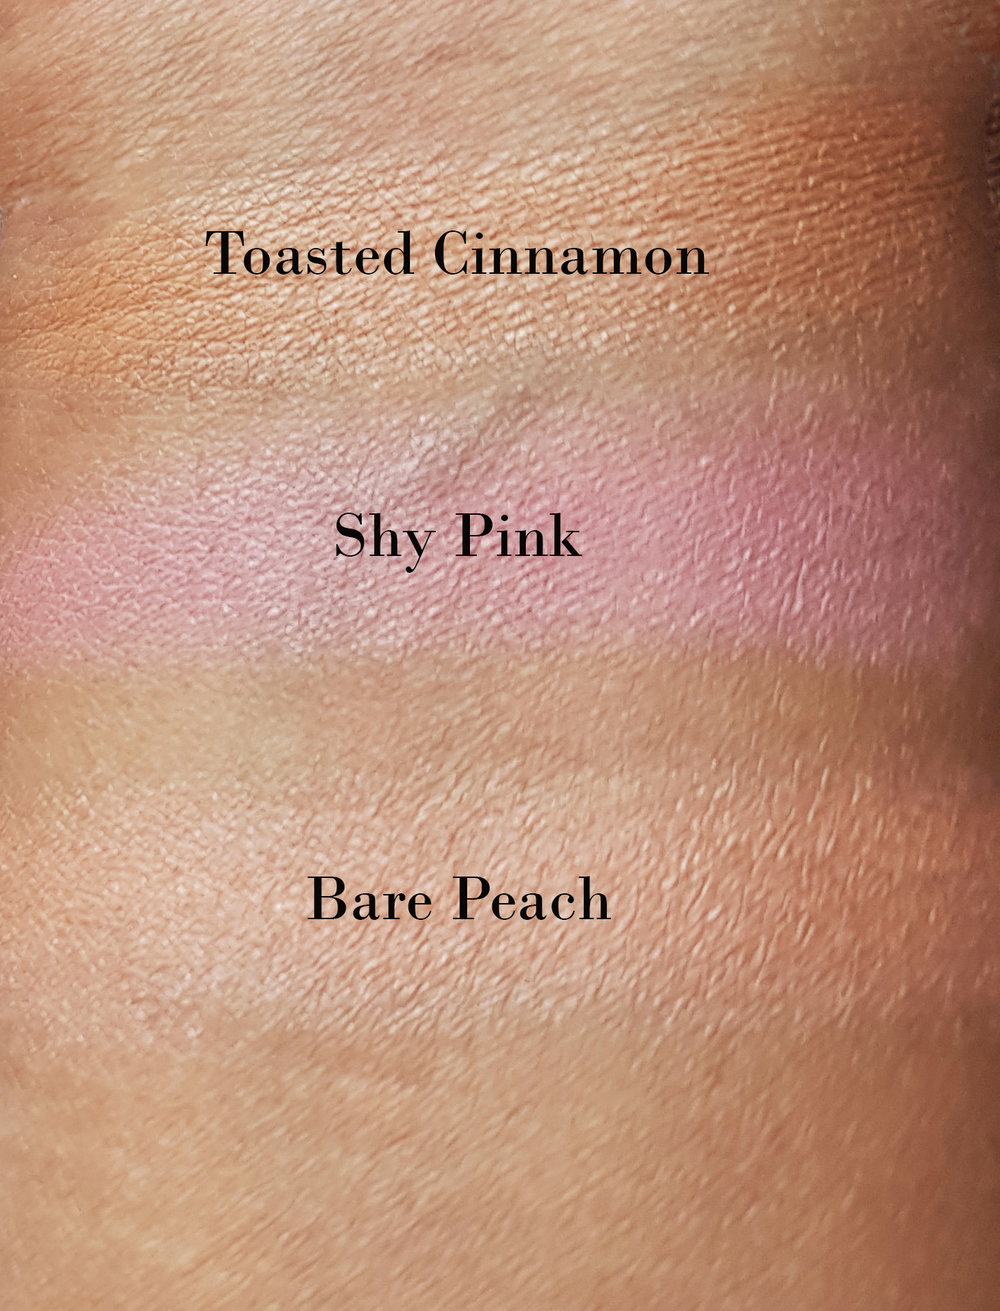 < Swatches - Photo courtesy of www.apaletteful.com